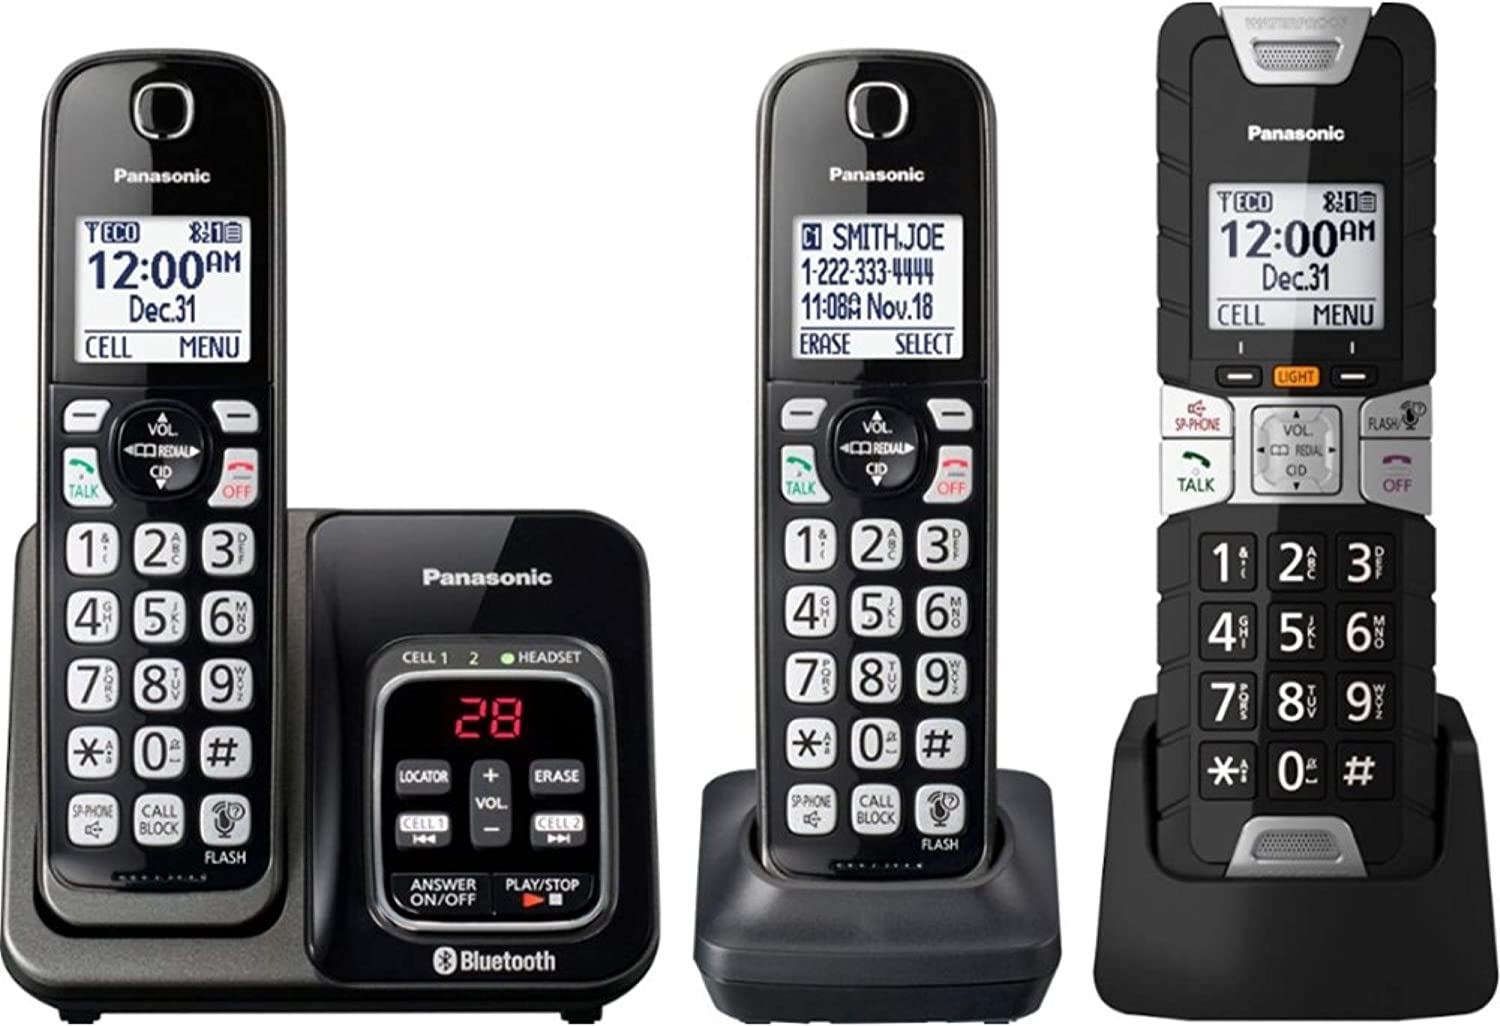 Panasonic Rugged Link2Cell Bluetooth Cordless Phone with Voice Assist, One-Touch Call Block and Answering Machine - 2 Standard Handsets + 1 Rugged Handset - KX-TGD583M (Black)